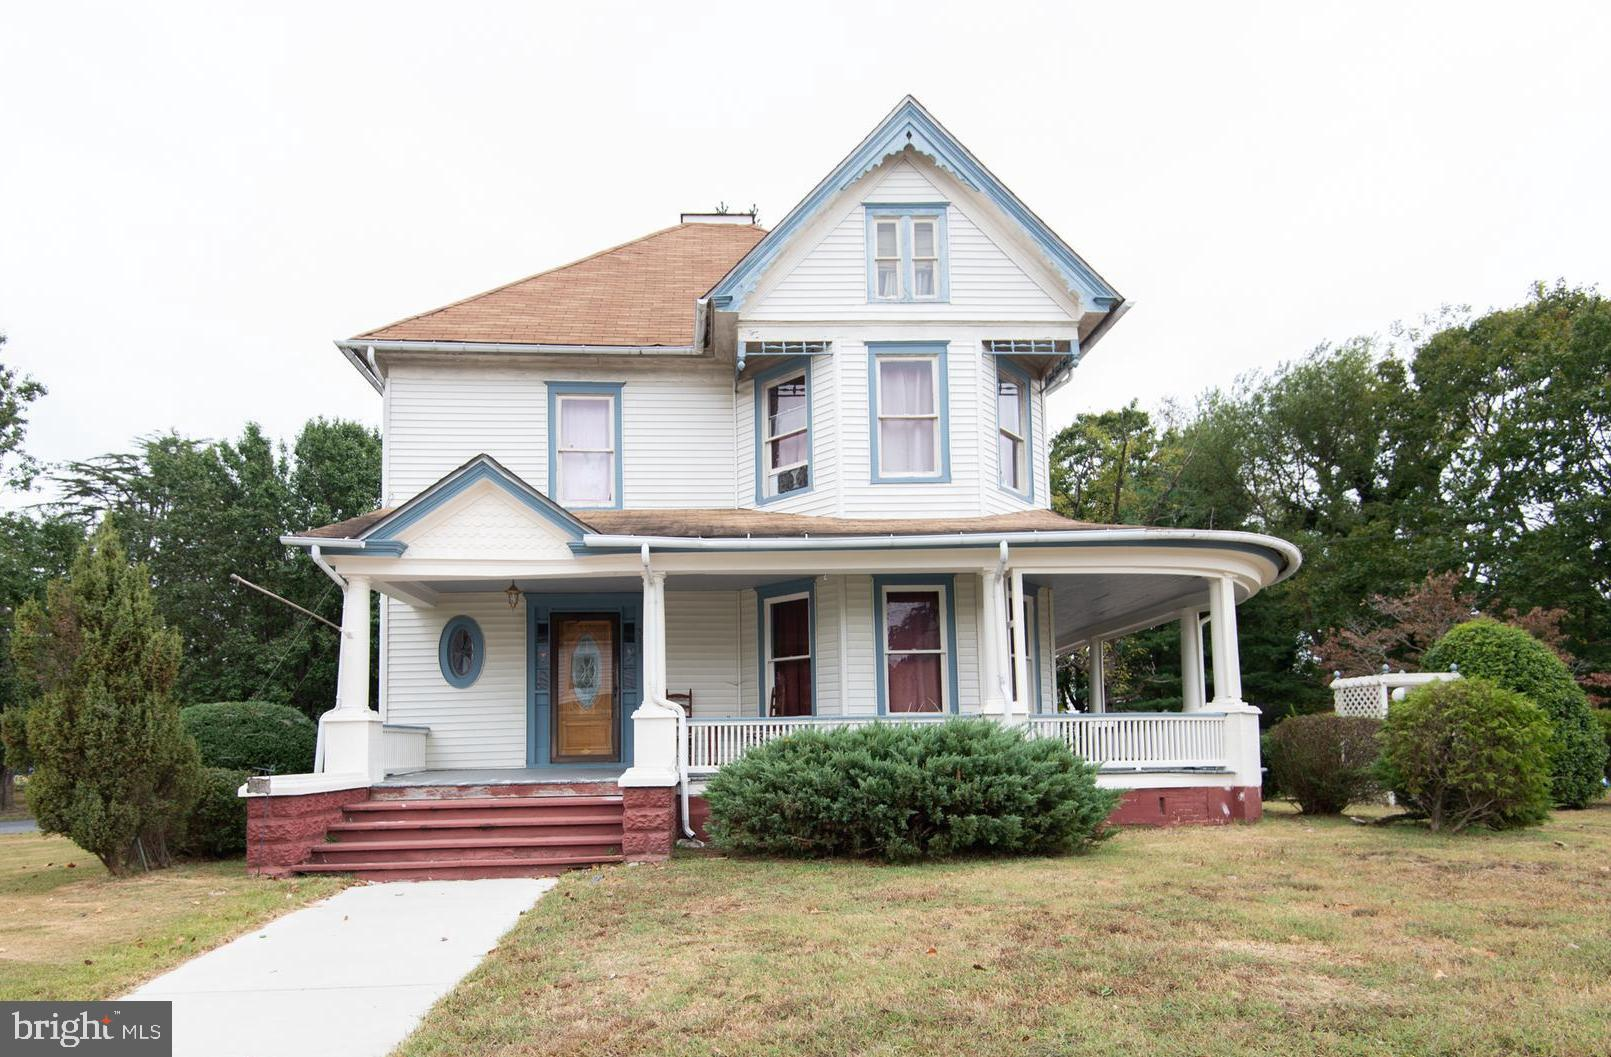 New roof to be installed prior to settlement   Victorian home with modern updates in kitchen and bathroom. Nice hardwood floors throughout.  Wrap around porch - recently painted.  Large corner lot and several outbuildings.